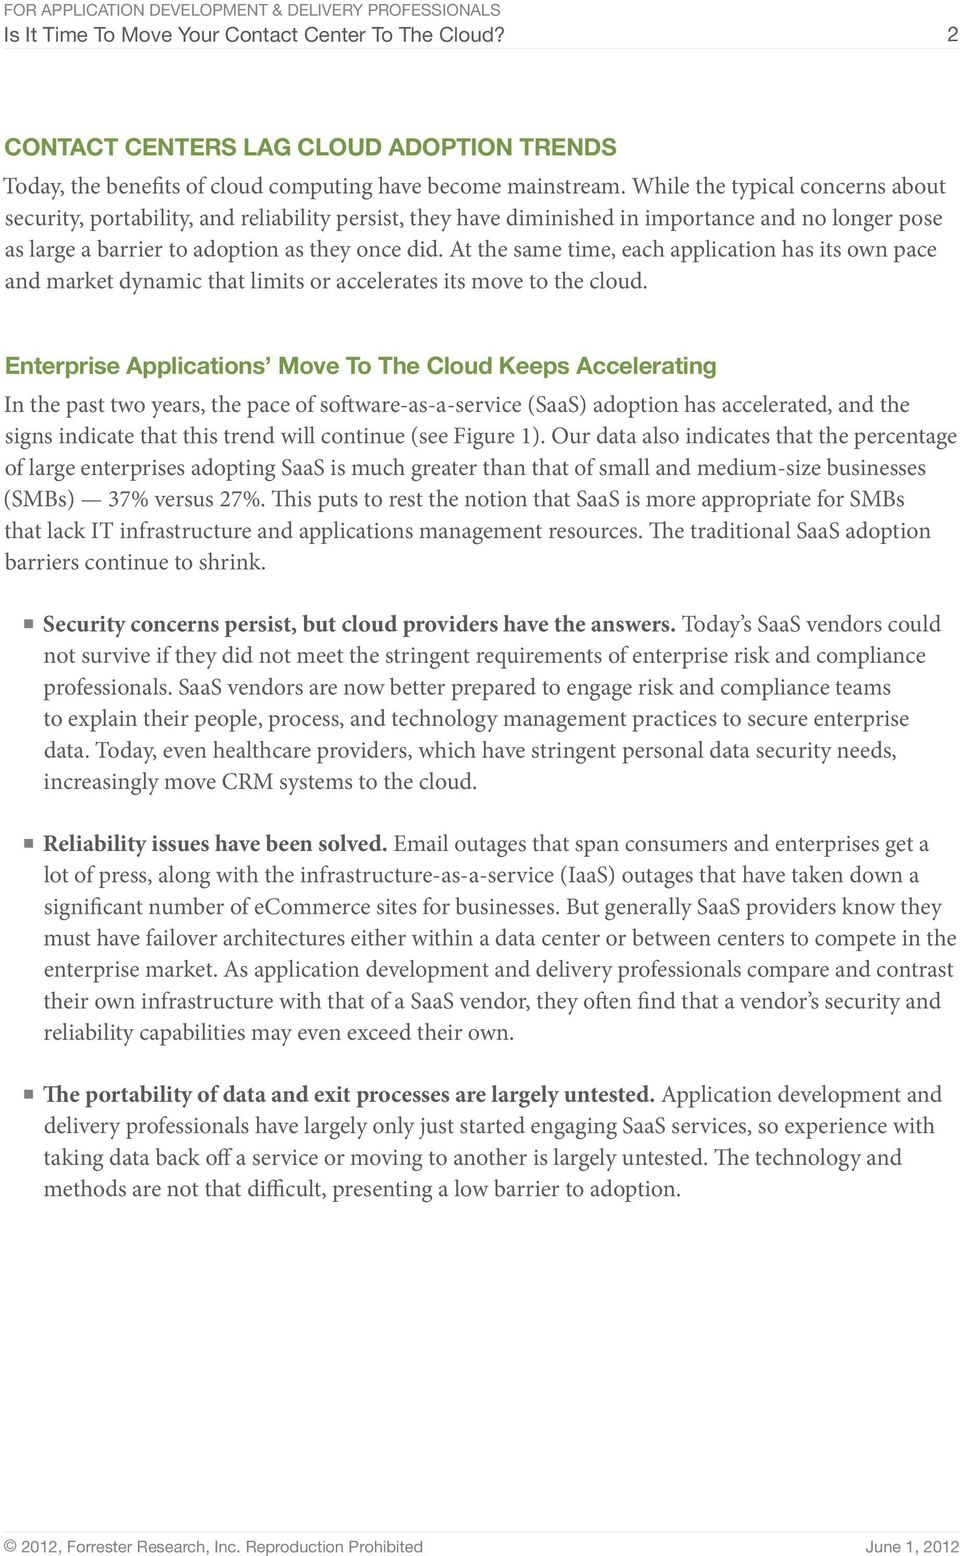 At the same time, each application has its own pace and market dynamic that limits or accelerates its move to the cloud.